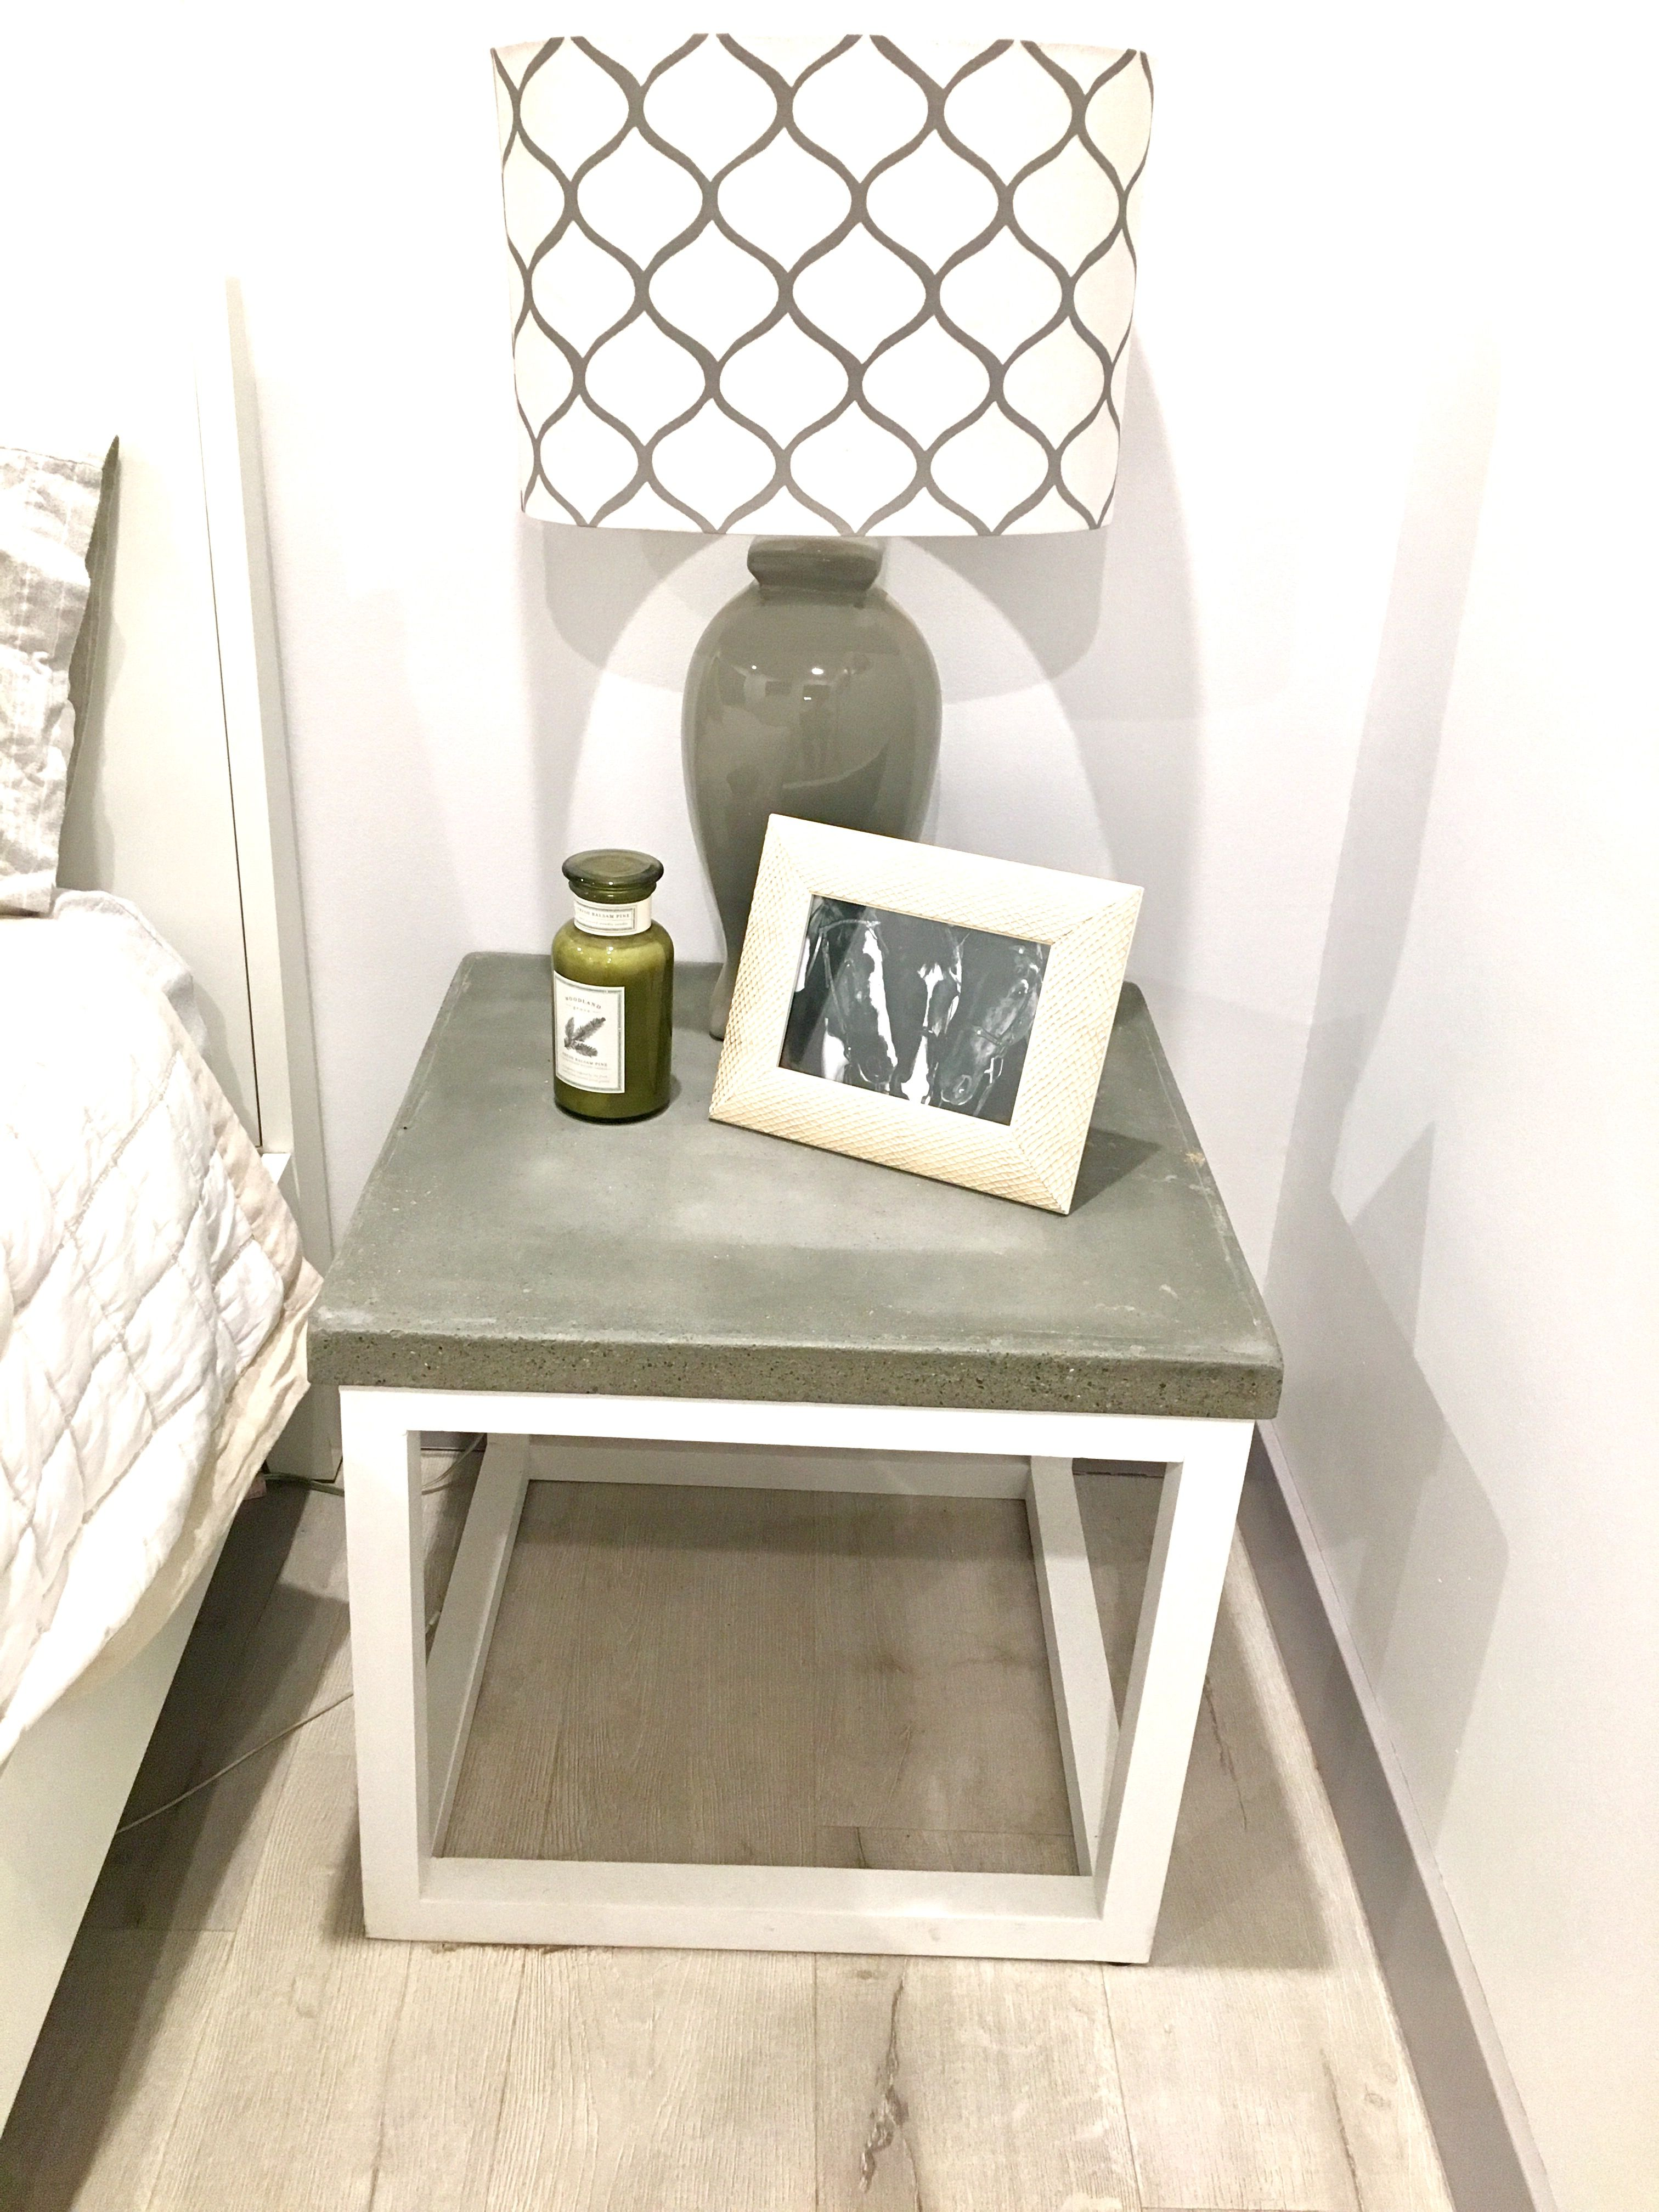 Nightstands After Diy Concrete Countertop Mix 1x1wood Finished On